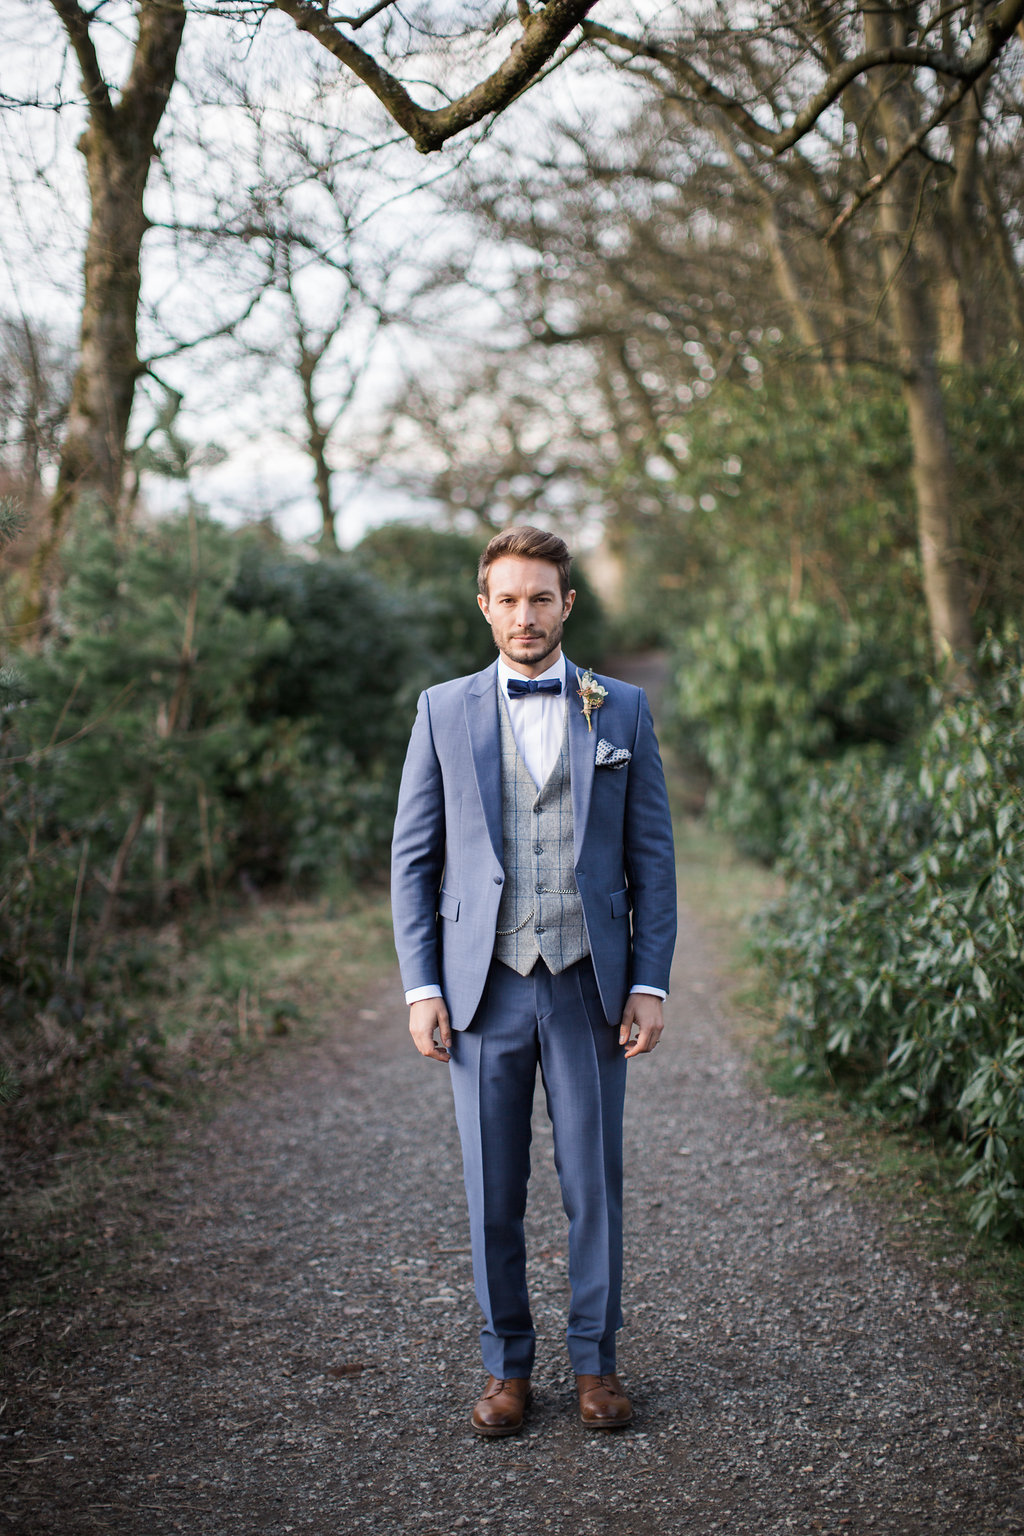 The groom rocked a cool blue suit as colored suits are a trend